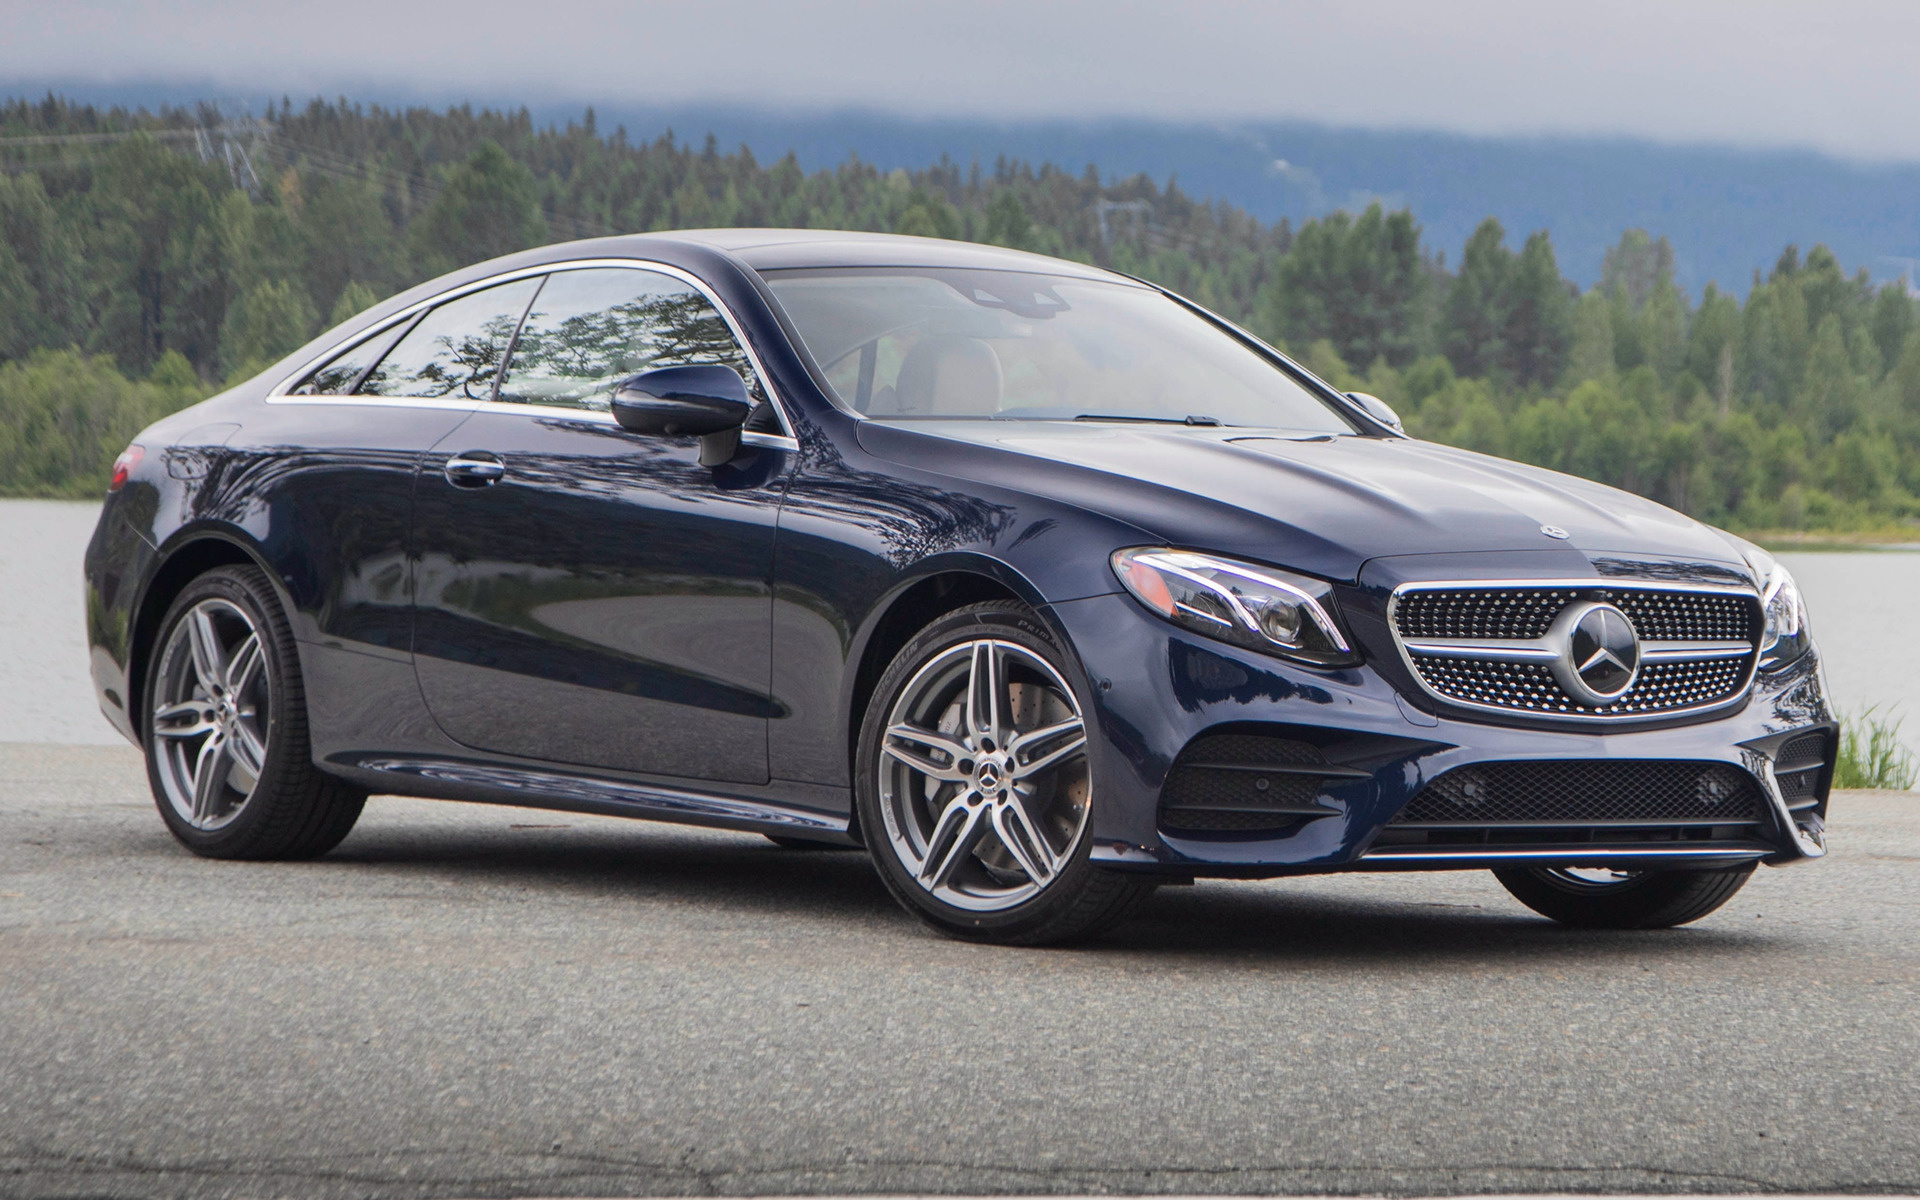 Nissan Sports Car >> 2018 Mercedes-Benz E-Class Coupe AMG Styling (US) - Wallpapers and HD Images | Car Pixel